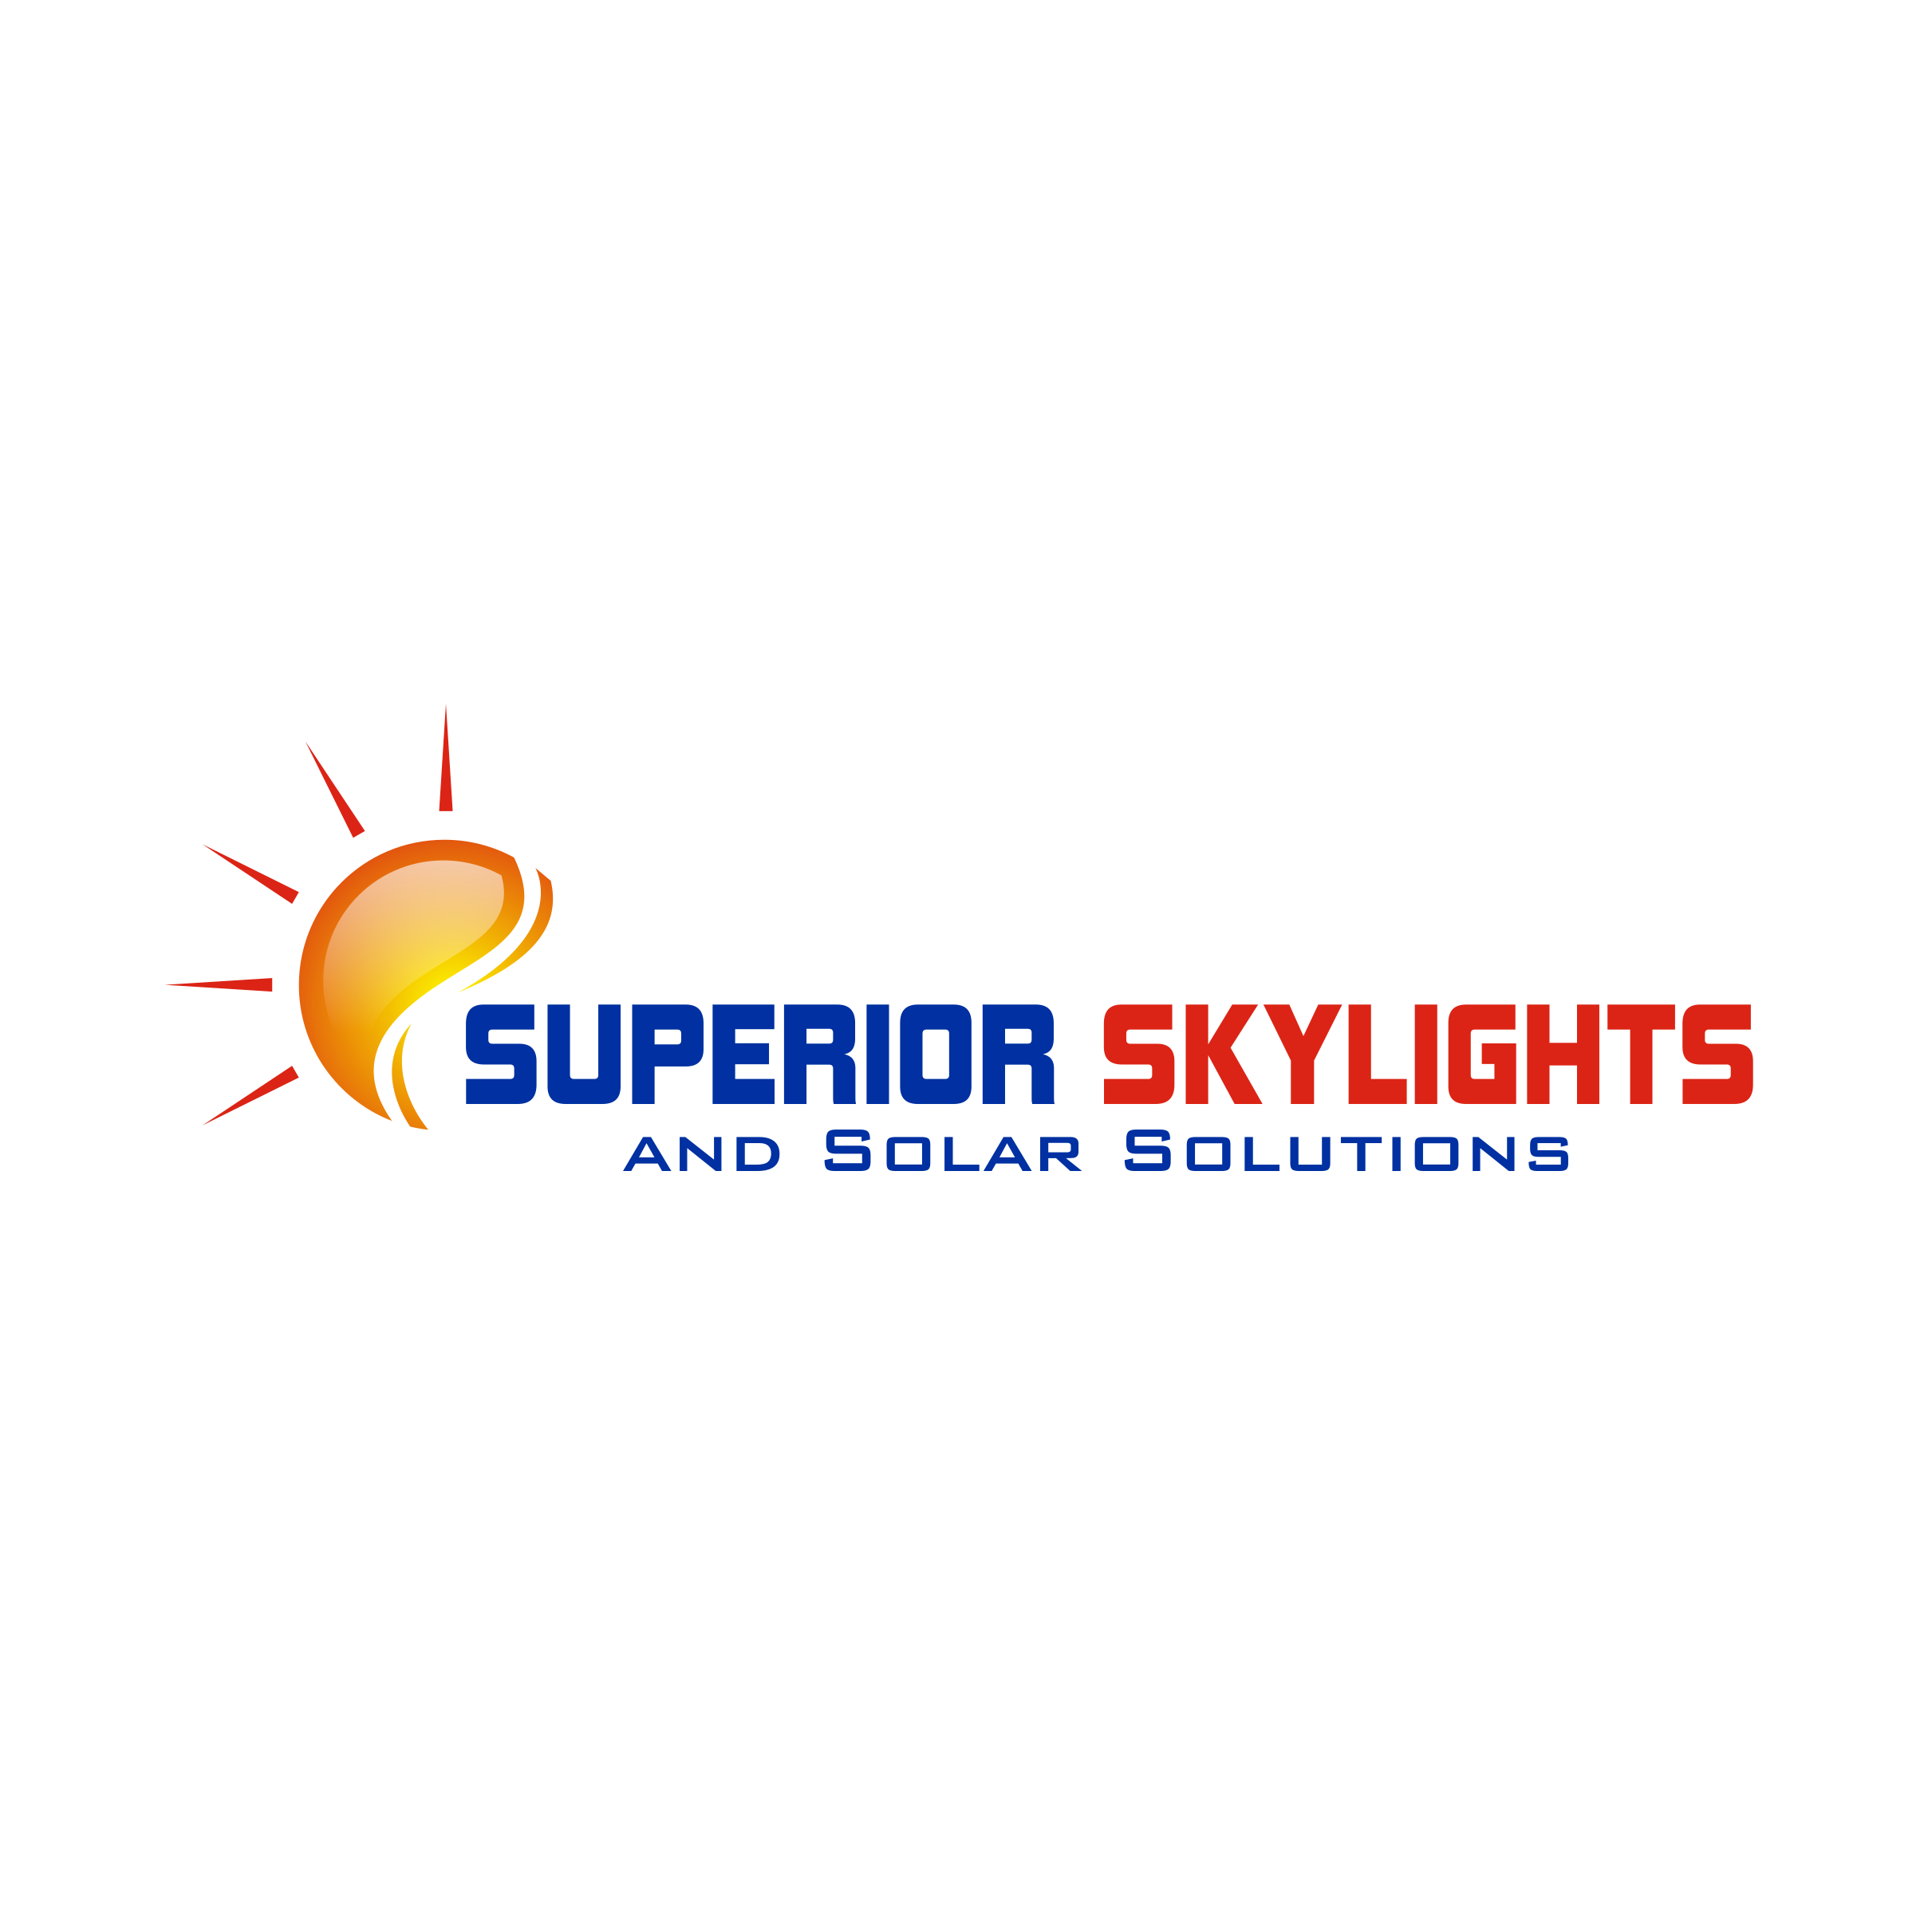 Superior Skylights and Solar Solutions